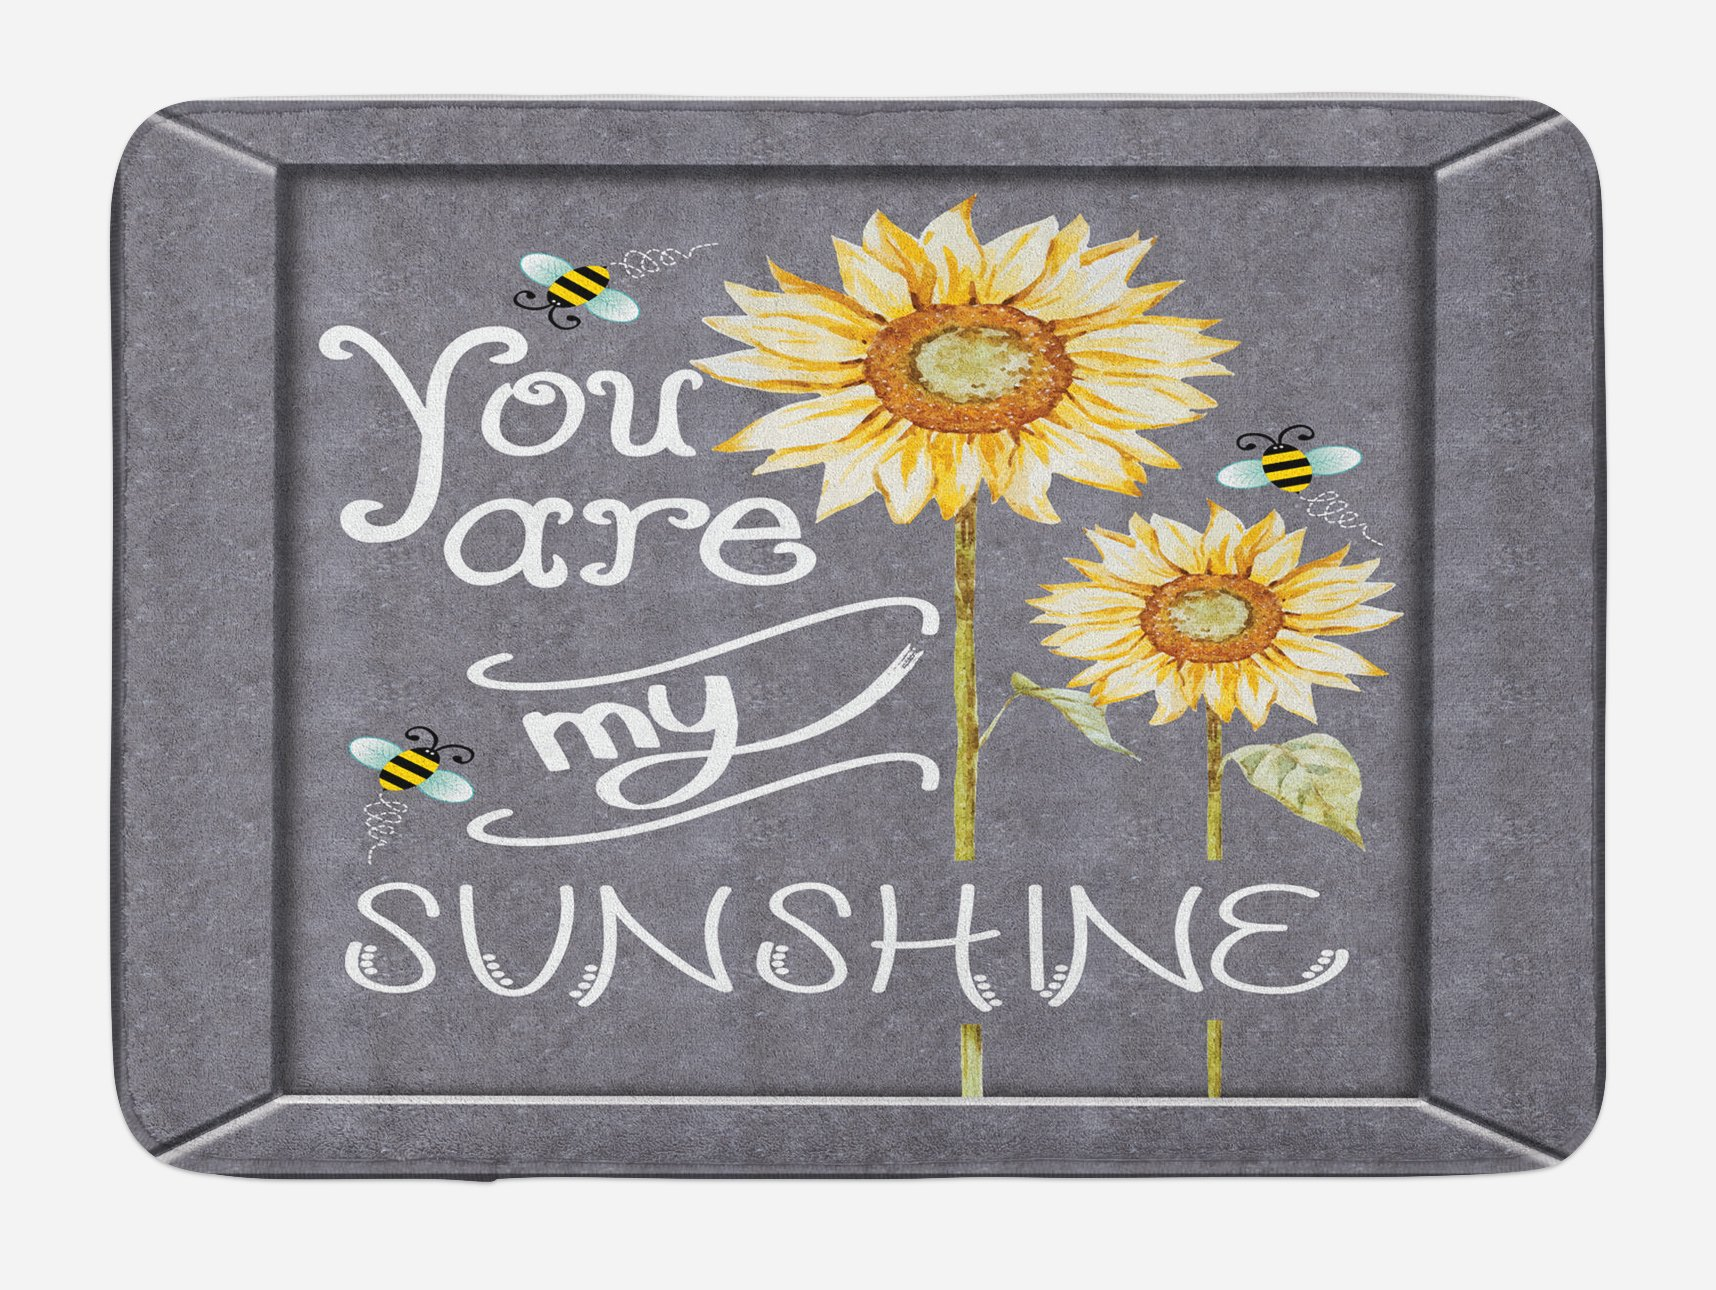 Lunarable You are My Sunshine Bath Mat, You are My Sunshine on Blackboard Bees Sunflowers Vintage Image, Plush Bathroom Decor Mat with Non Slip Backing, 29.5 W X 17.5 W Inches, Grey Yellow